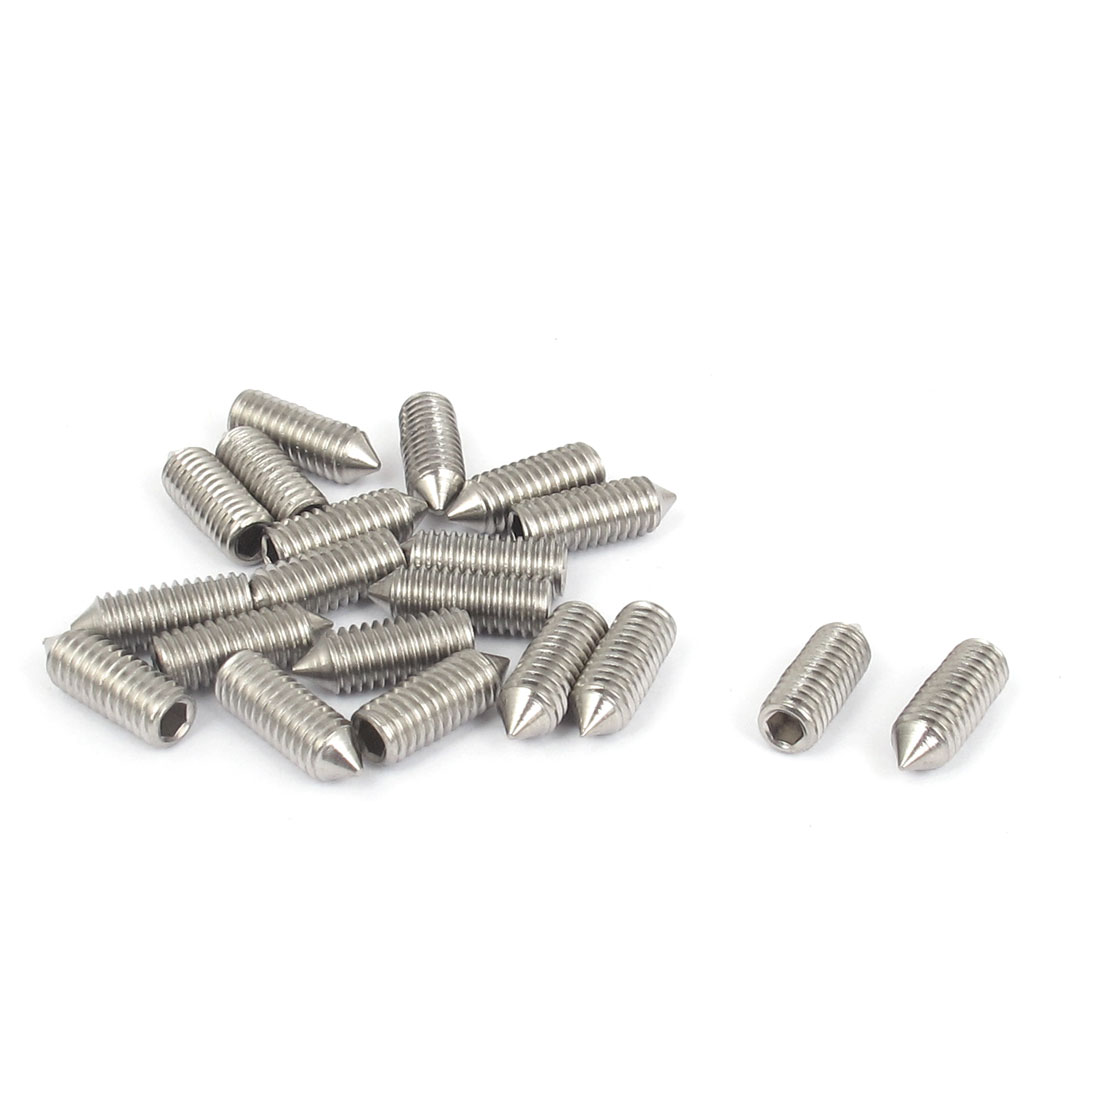 M6x16mm 304 Stainless Steel Cone Point Hexagon Socket Grub Screws 20pcs